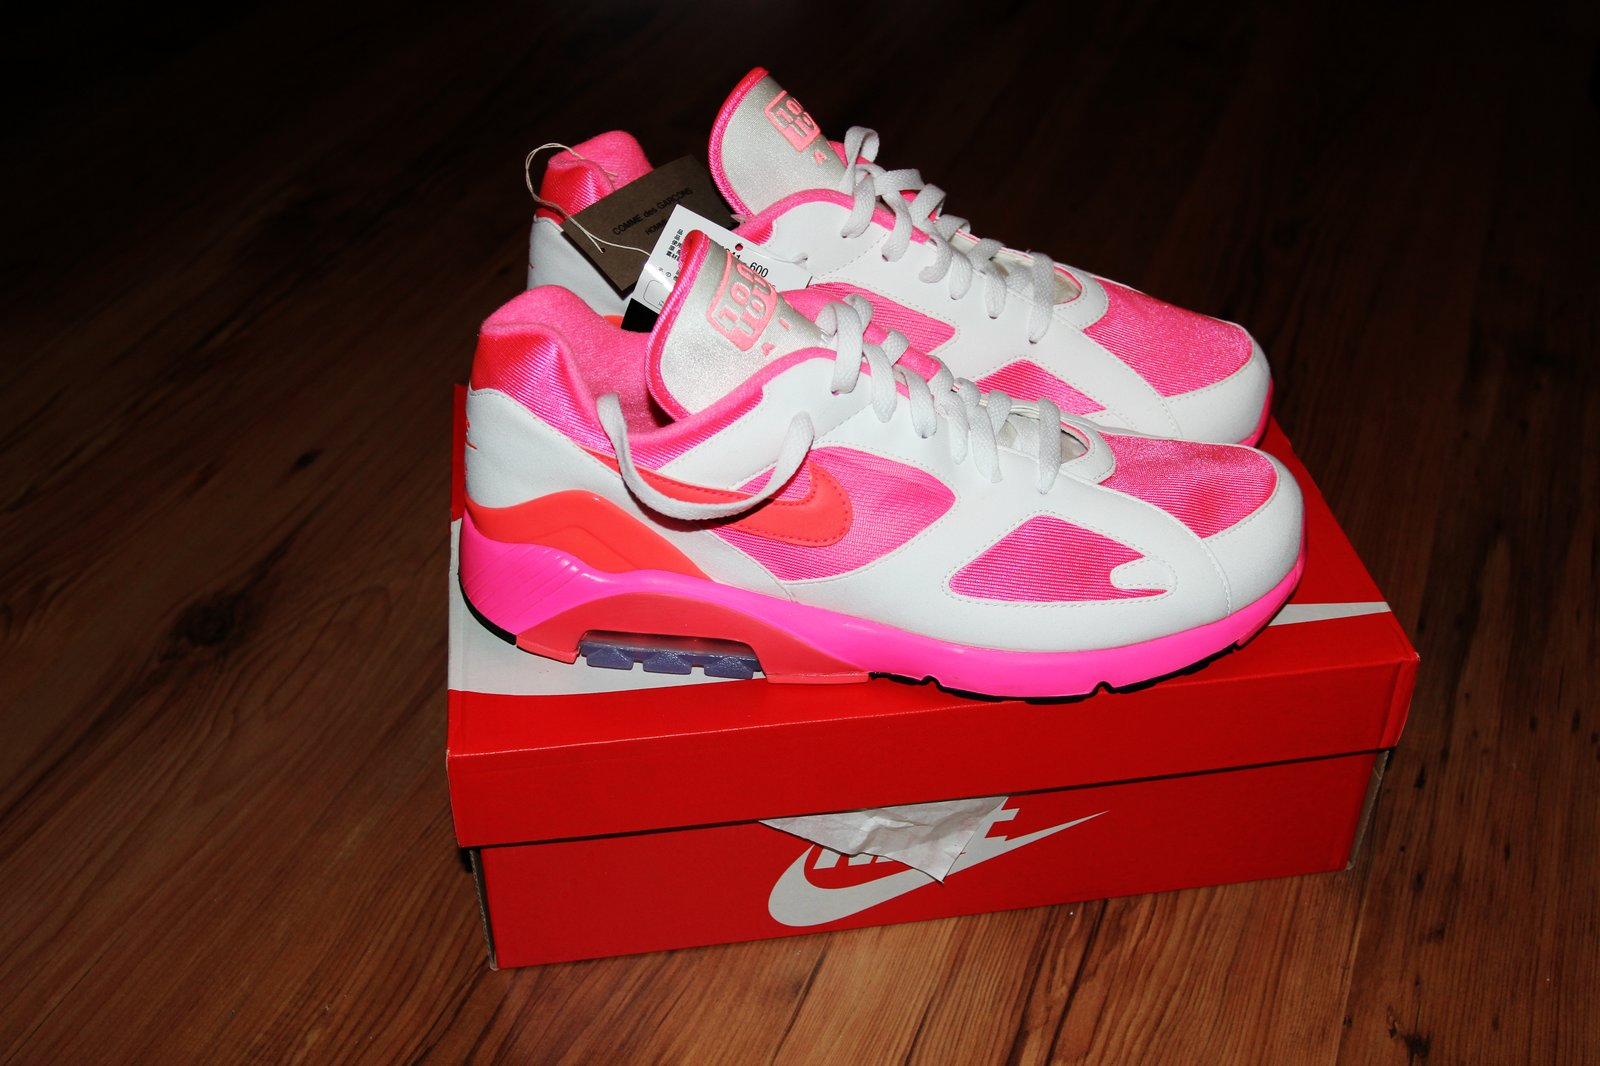 701b8c1ef2c0 Nike Bnwt Ss18 Comme Des Garcons X Nike Air Max 180 Sneakers Size 11 ...